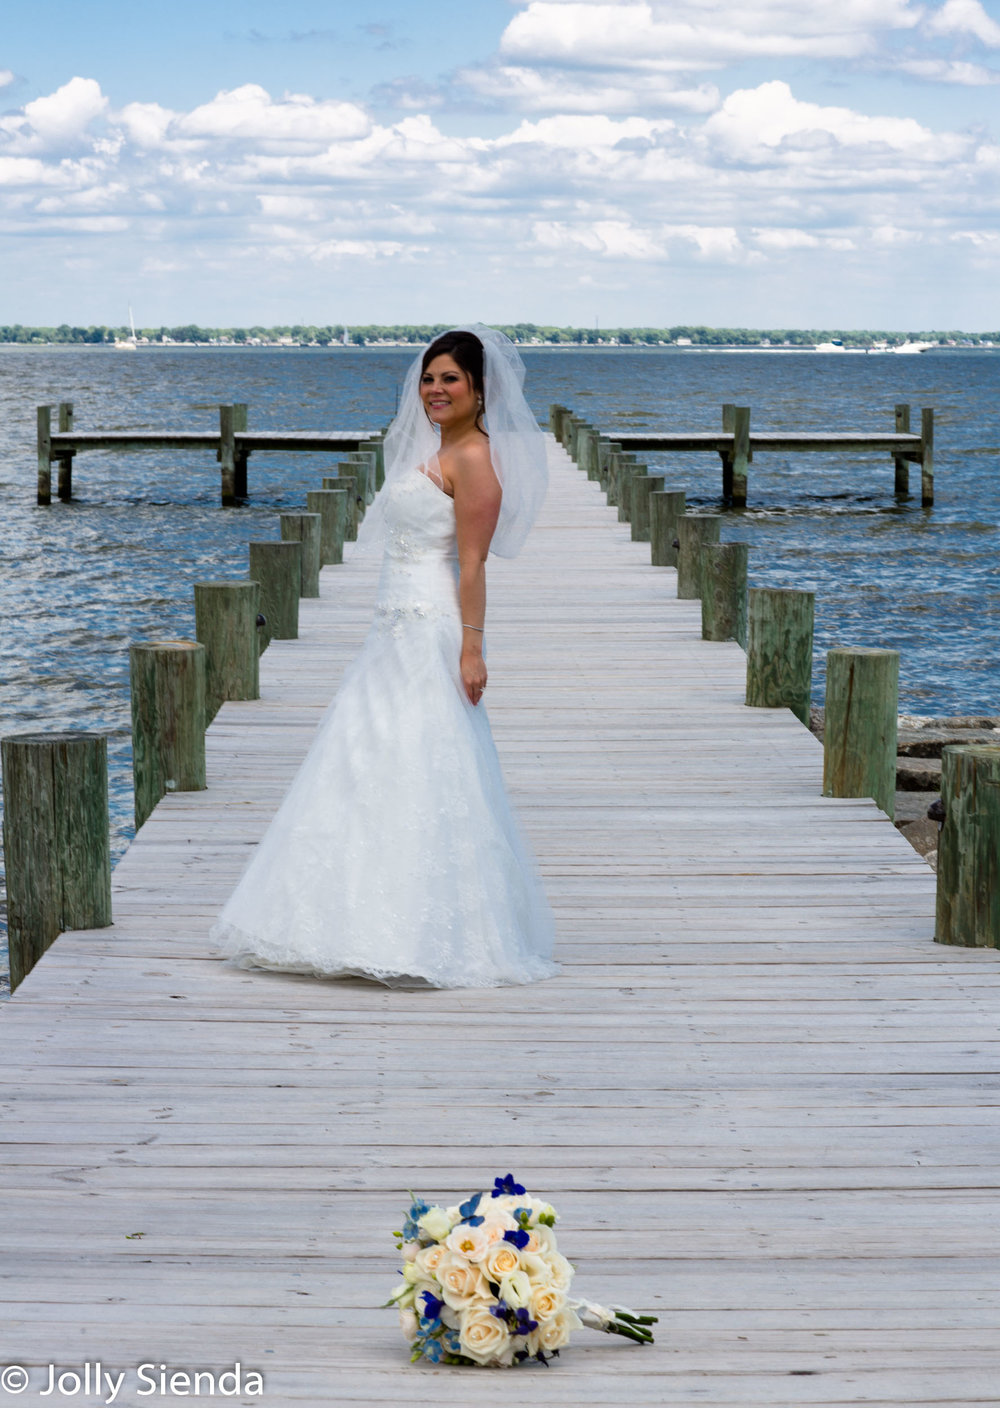 Wedding photography, the bride, the beach, and the bouquet